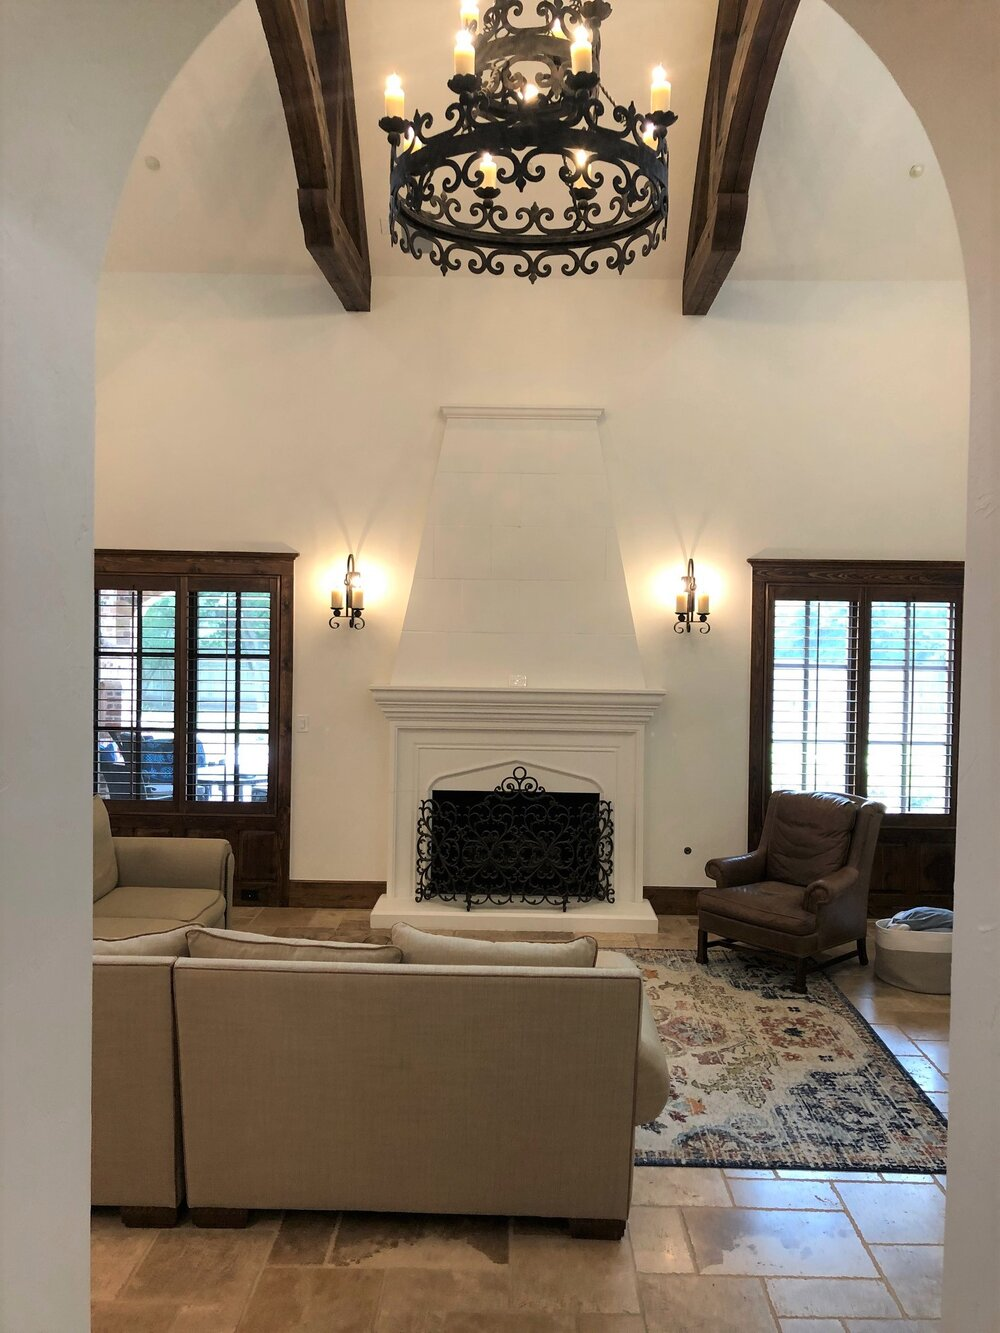 This homeowner wanted to know how to make the fireplace more of a focal point and arrange the furniture to help divide up the space in this Tuscan great room.